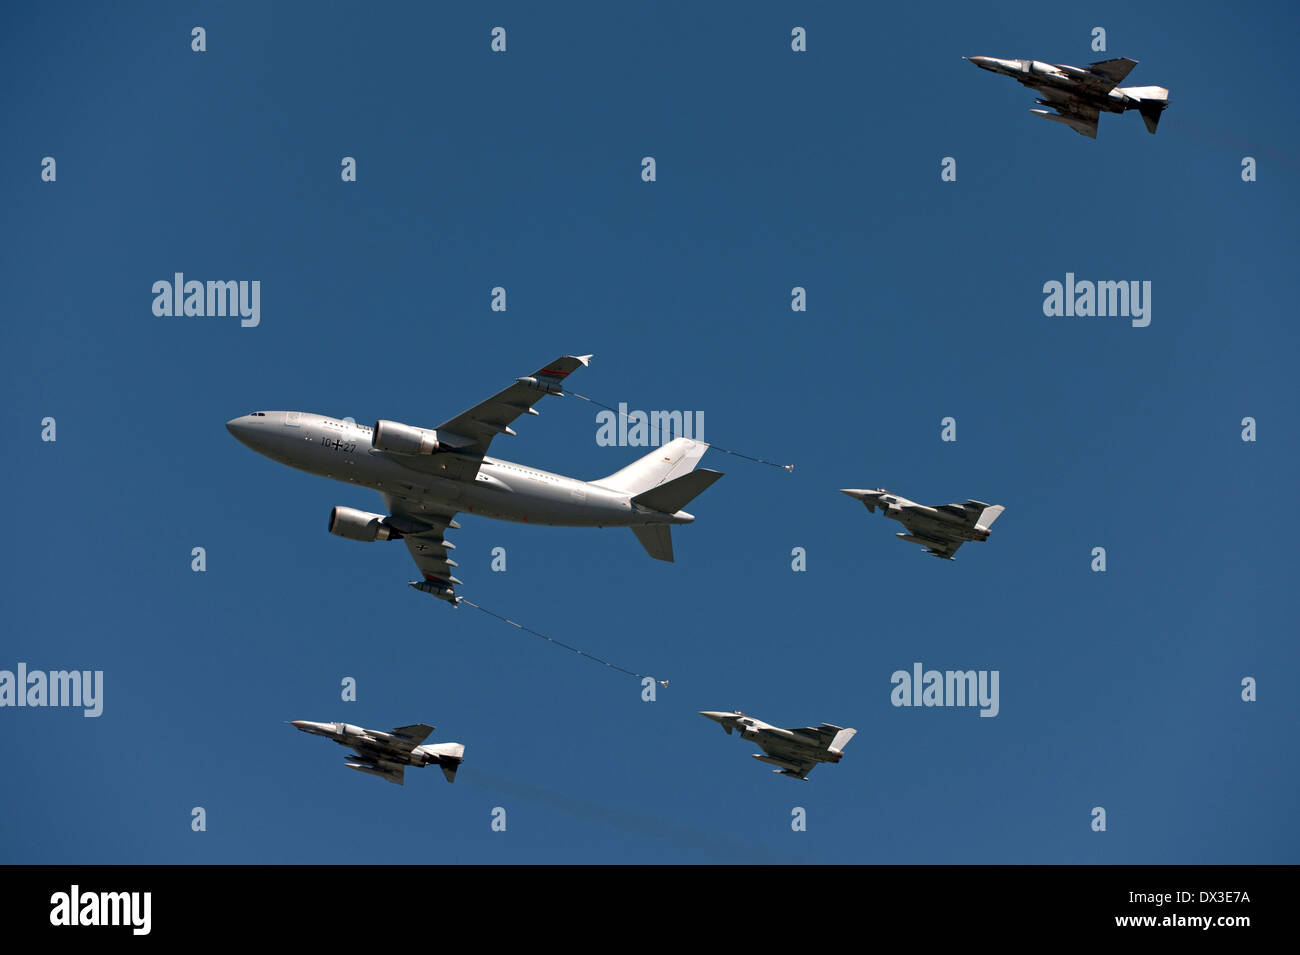 air refueling - Stock Image